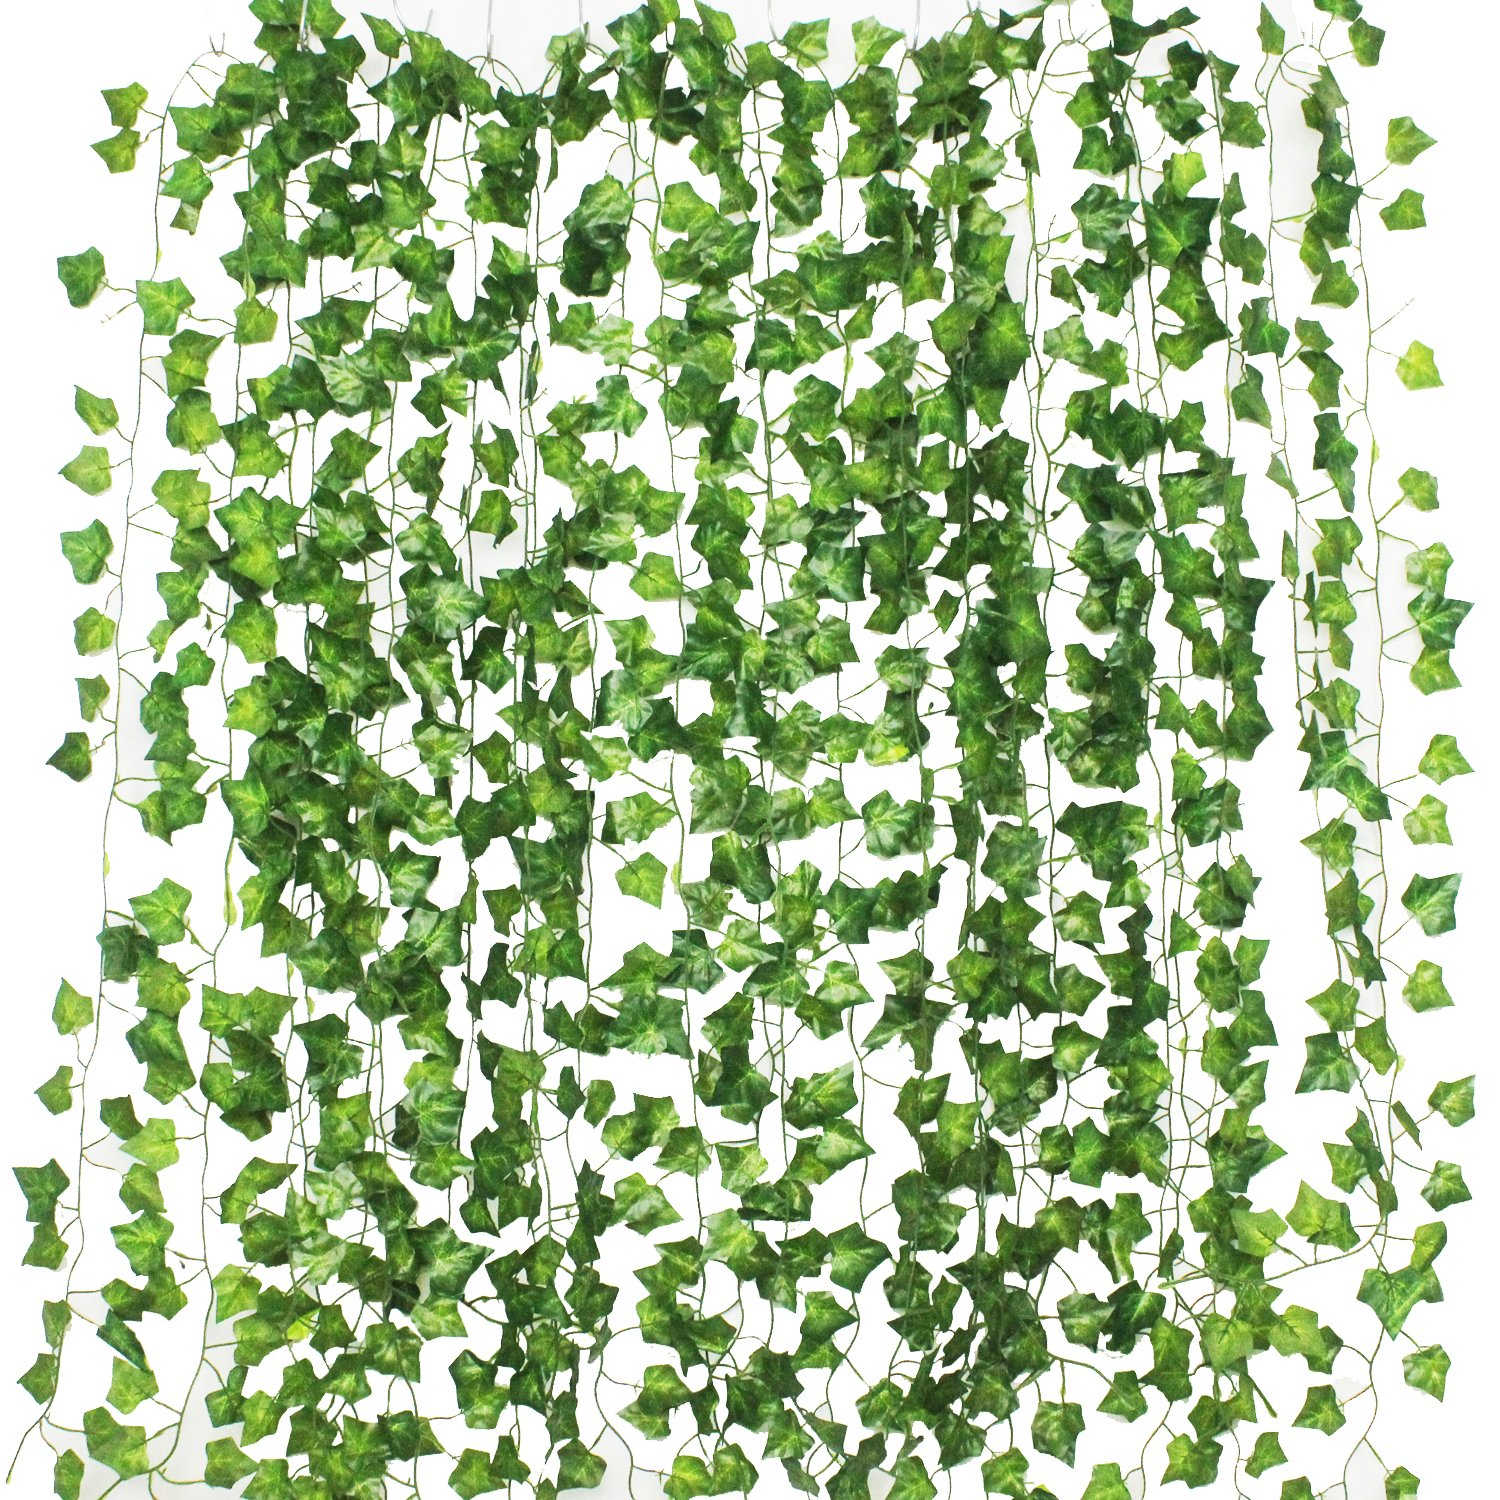 GPARK 12Pack / Each 82 inch , Artificial Ivy Garland Fake Plants , Green For Wedding Party Garden Outdoor Greenery Wall Decoration by GPARK